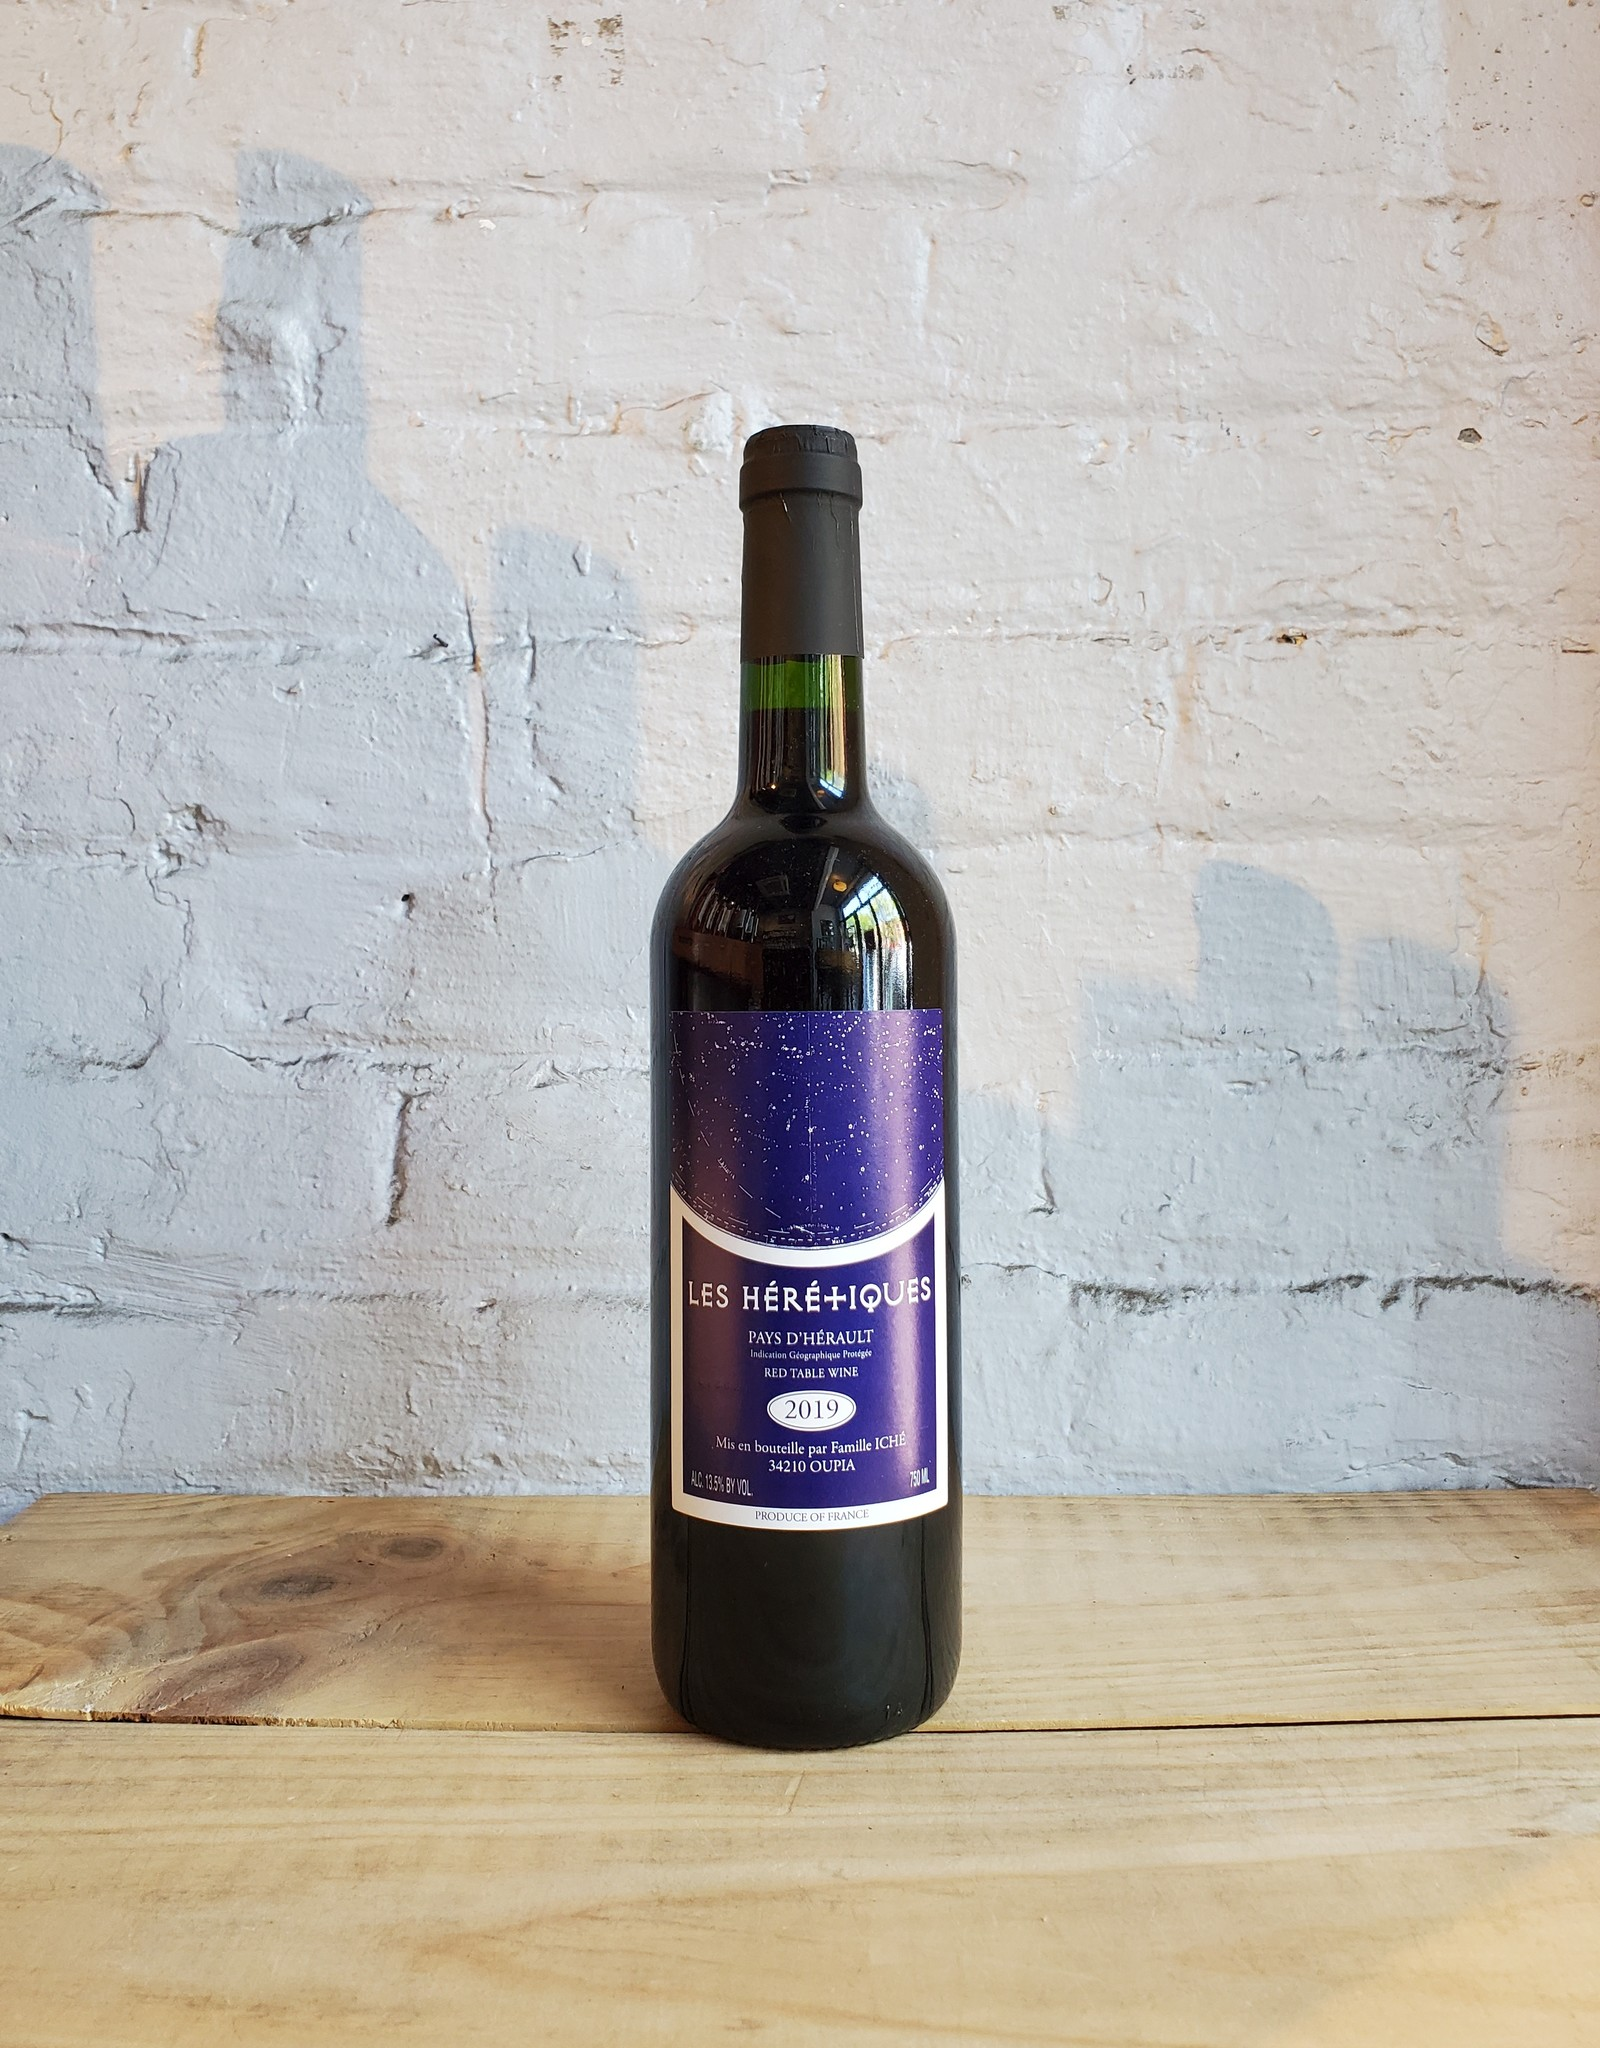 Wine 2019 Les Heretiques - Pays d'Herault, Languedoc-Roussillon, France (750ml)